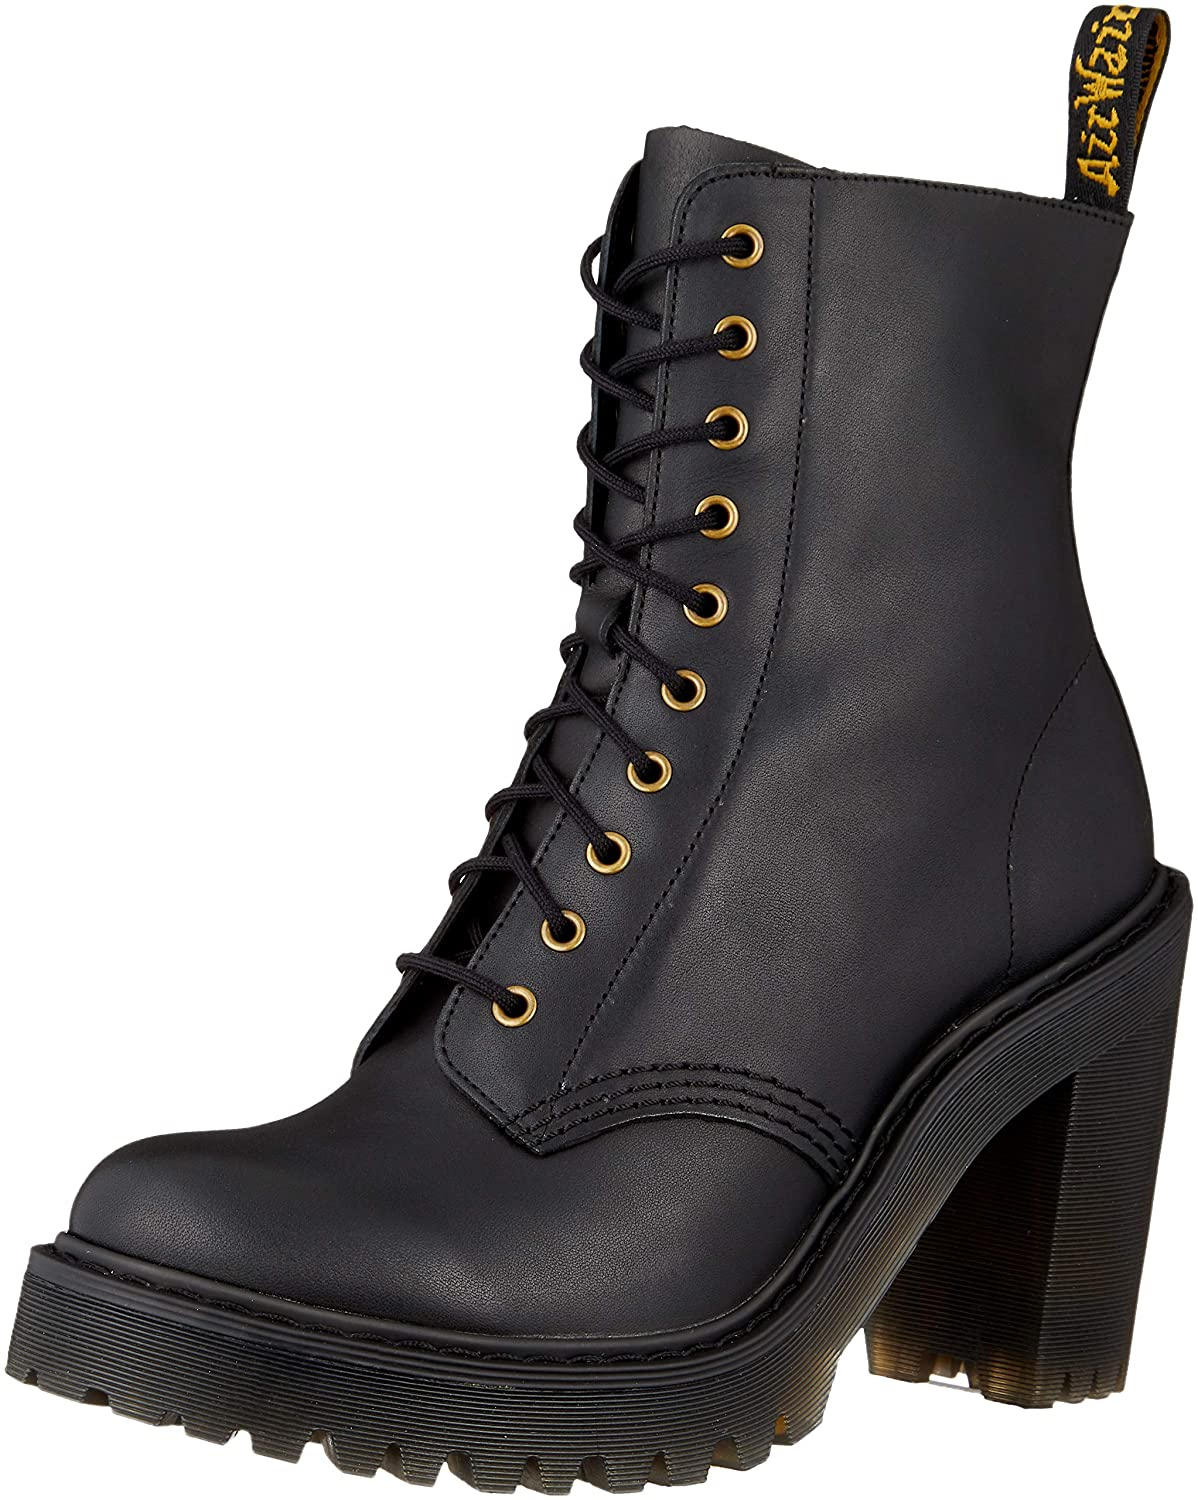 0c59cc5bd3e Dr. Martens Women's Kendra Ankle Boots: Amazon.co.uk: Shoes & Bags